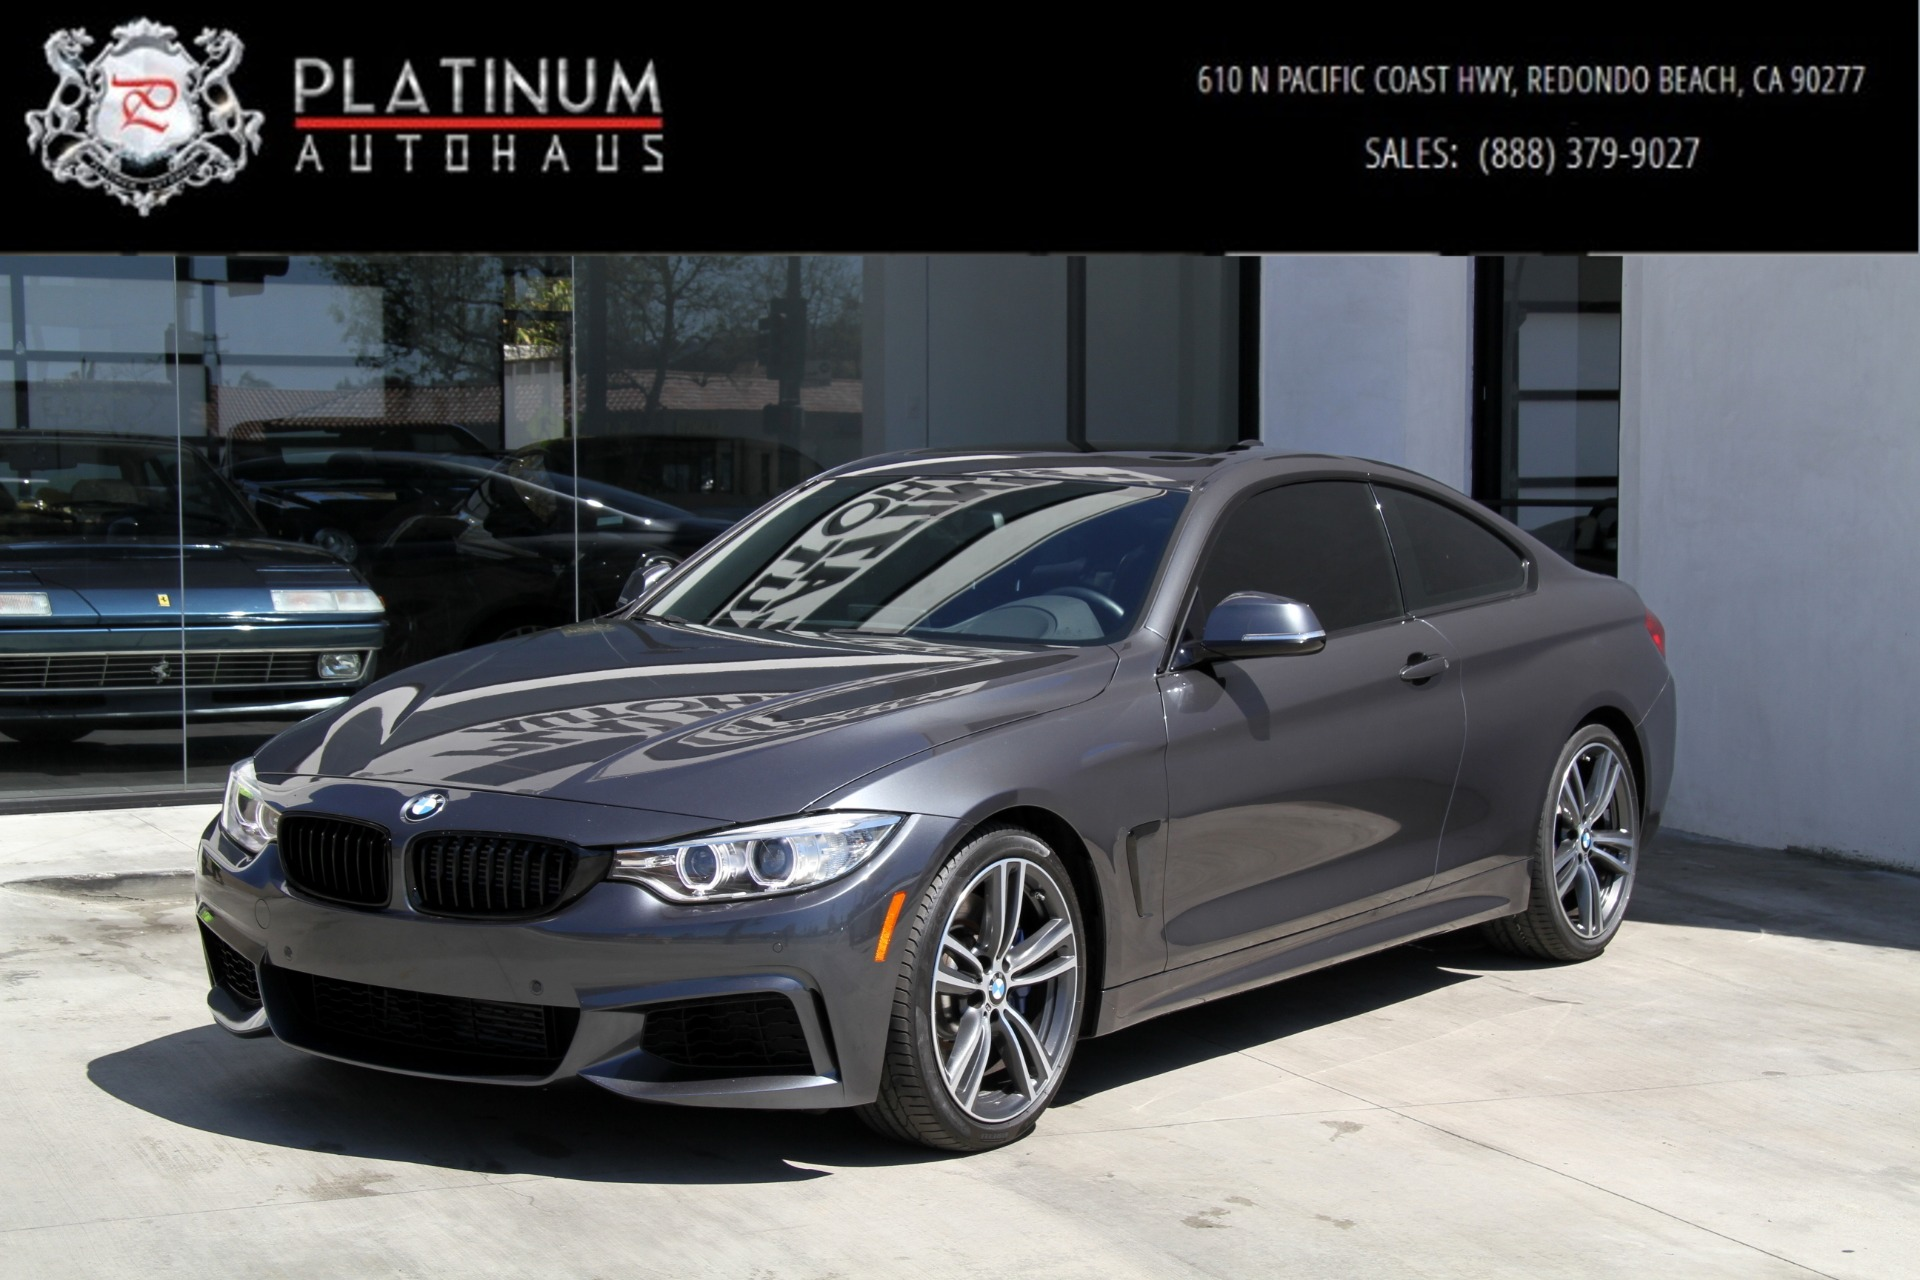 Bmw 435i For Sale >> 2015 Bmw 4 Series 435i M Sport Package Stock 6137 For Sale